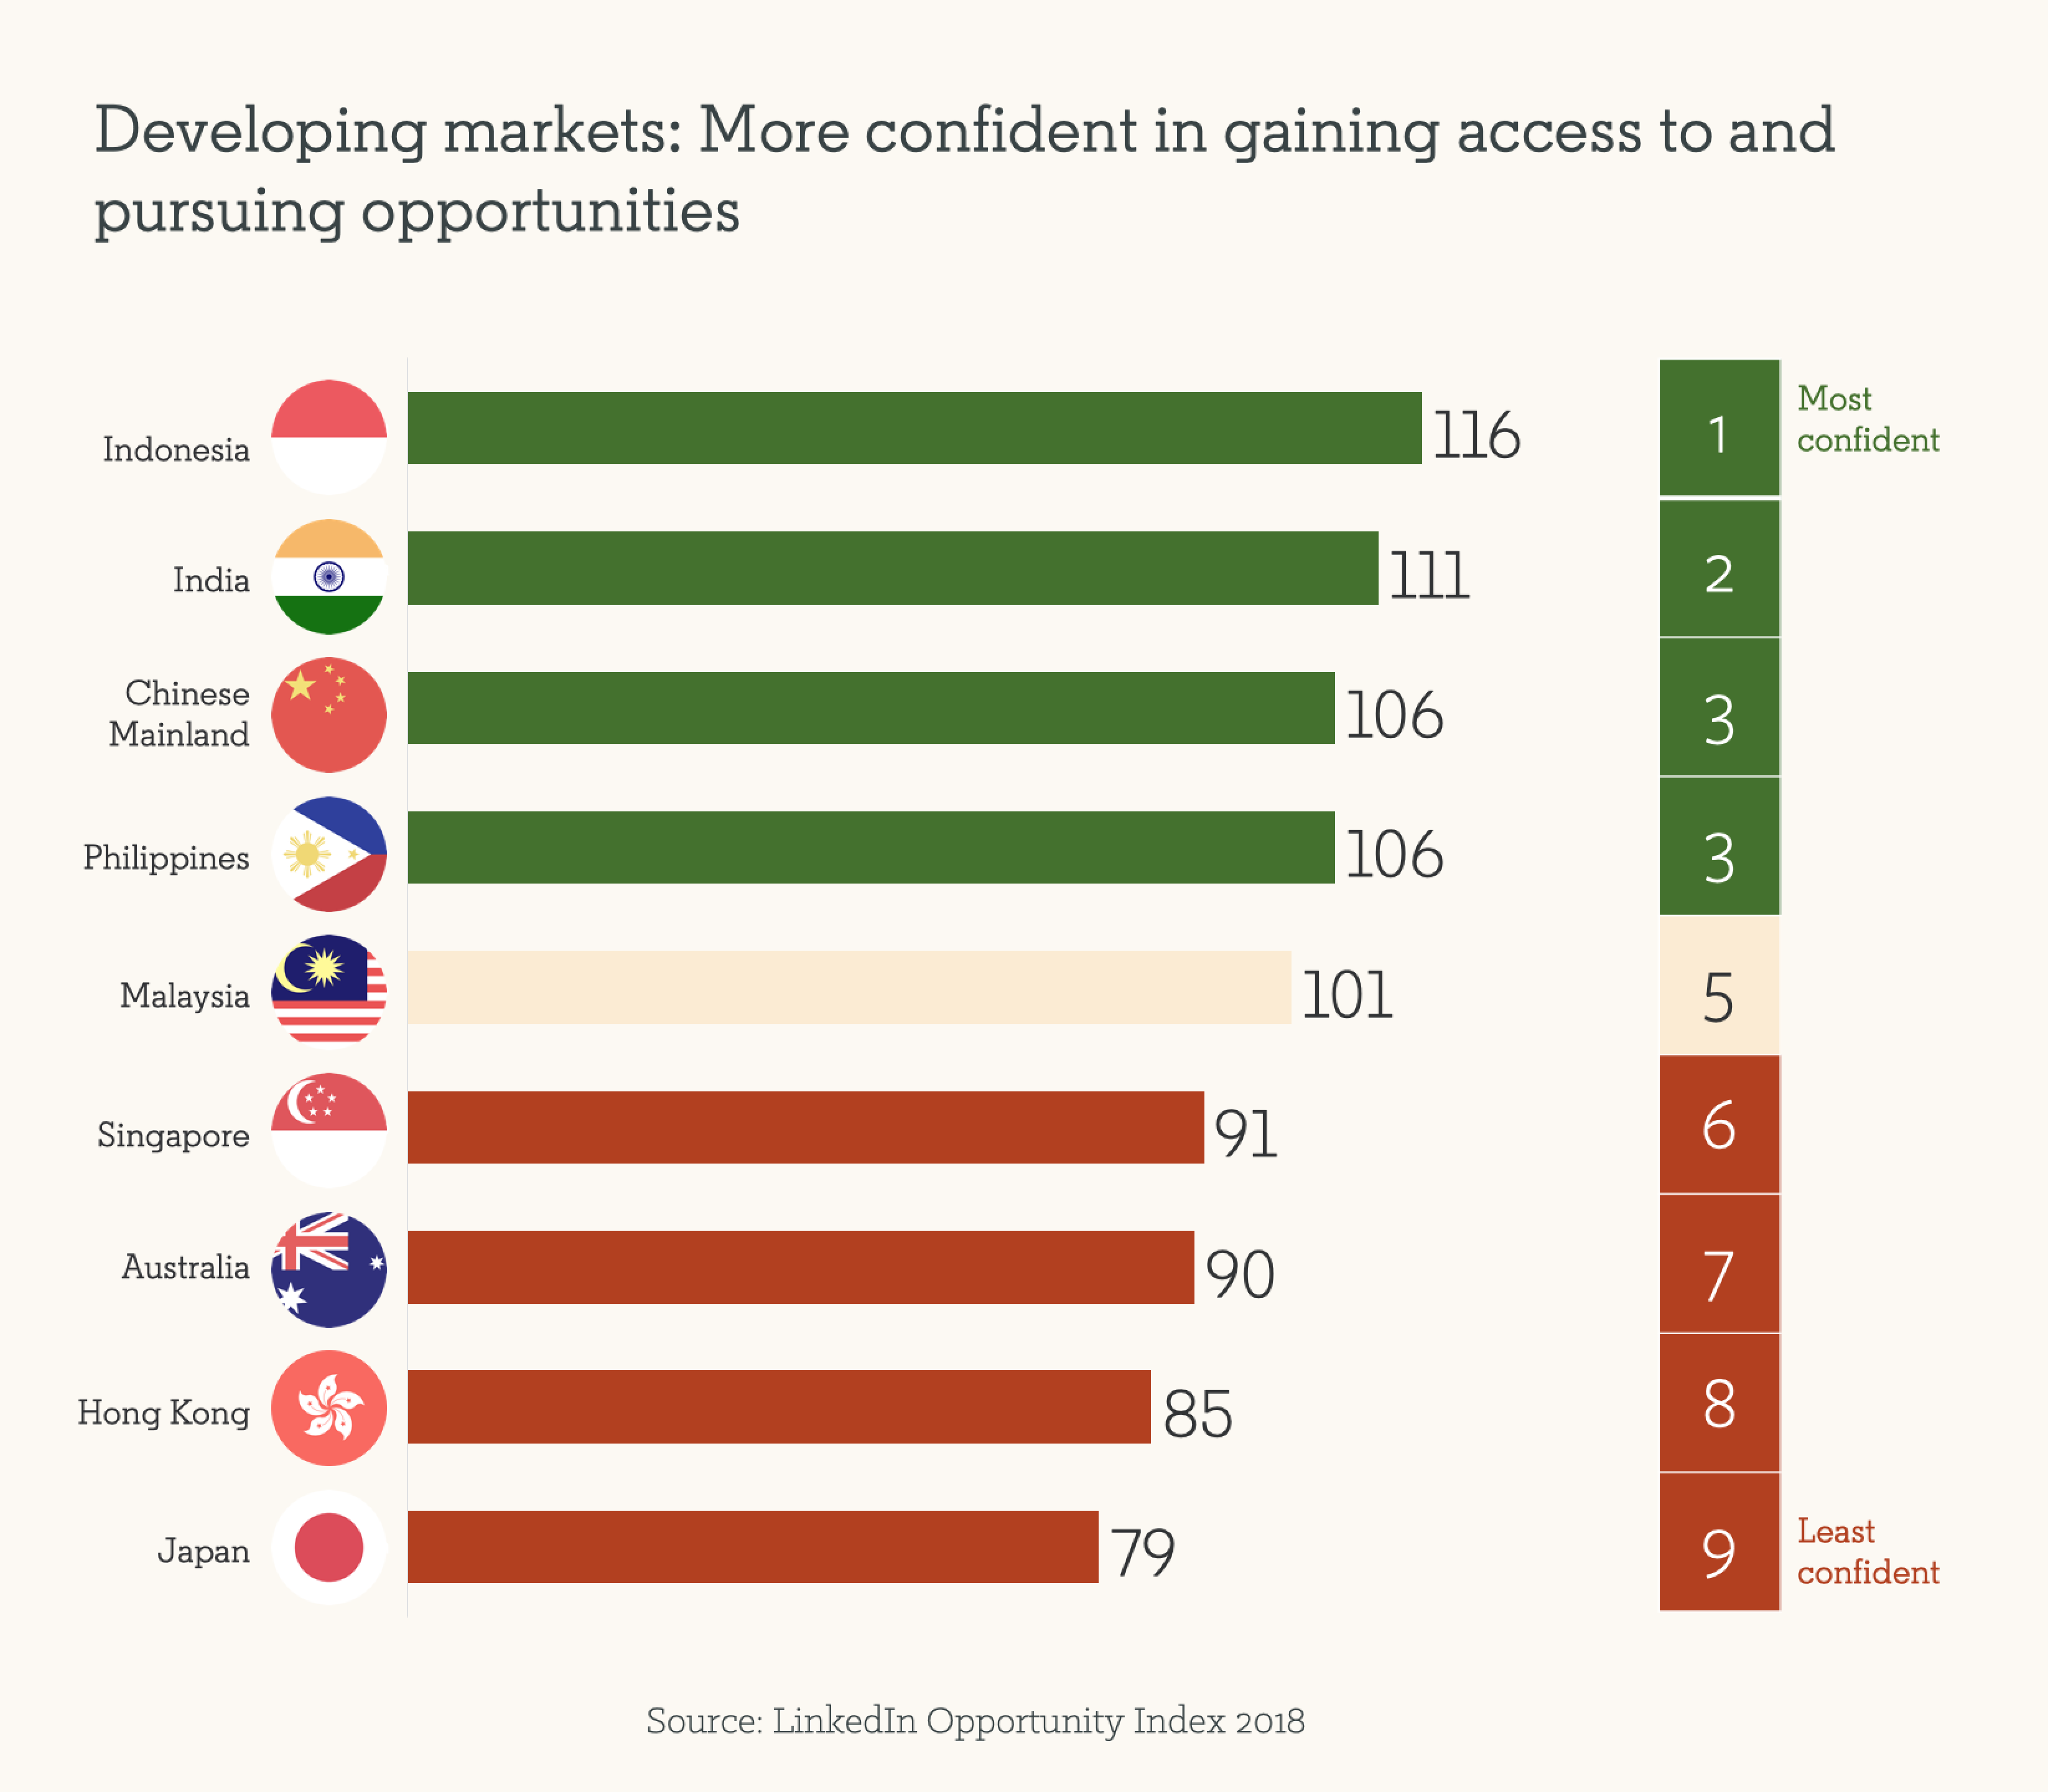 Developing markets are more confident in gaining access to and pursuing opportunities